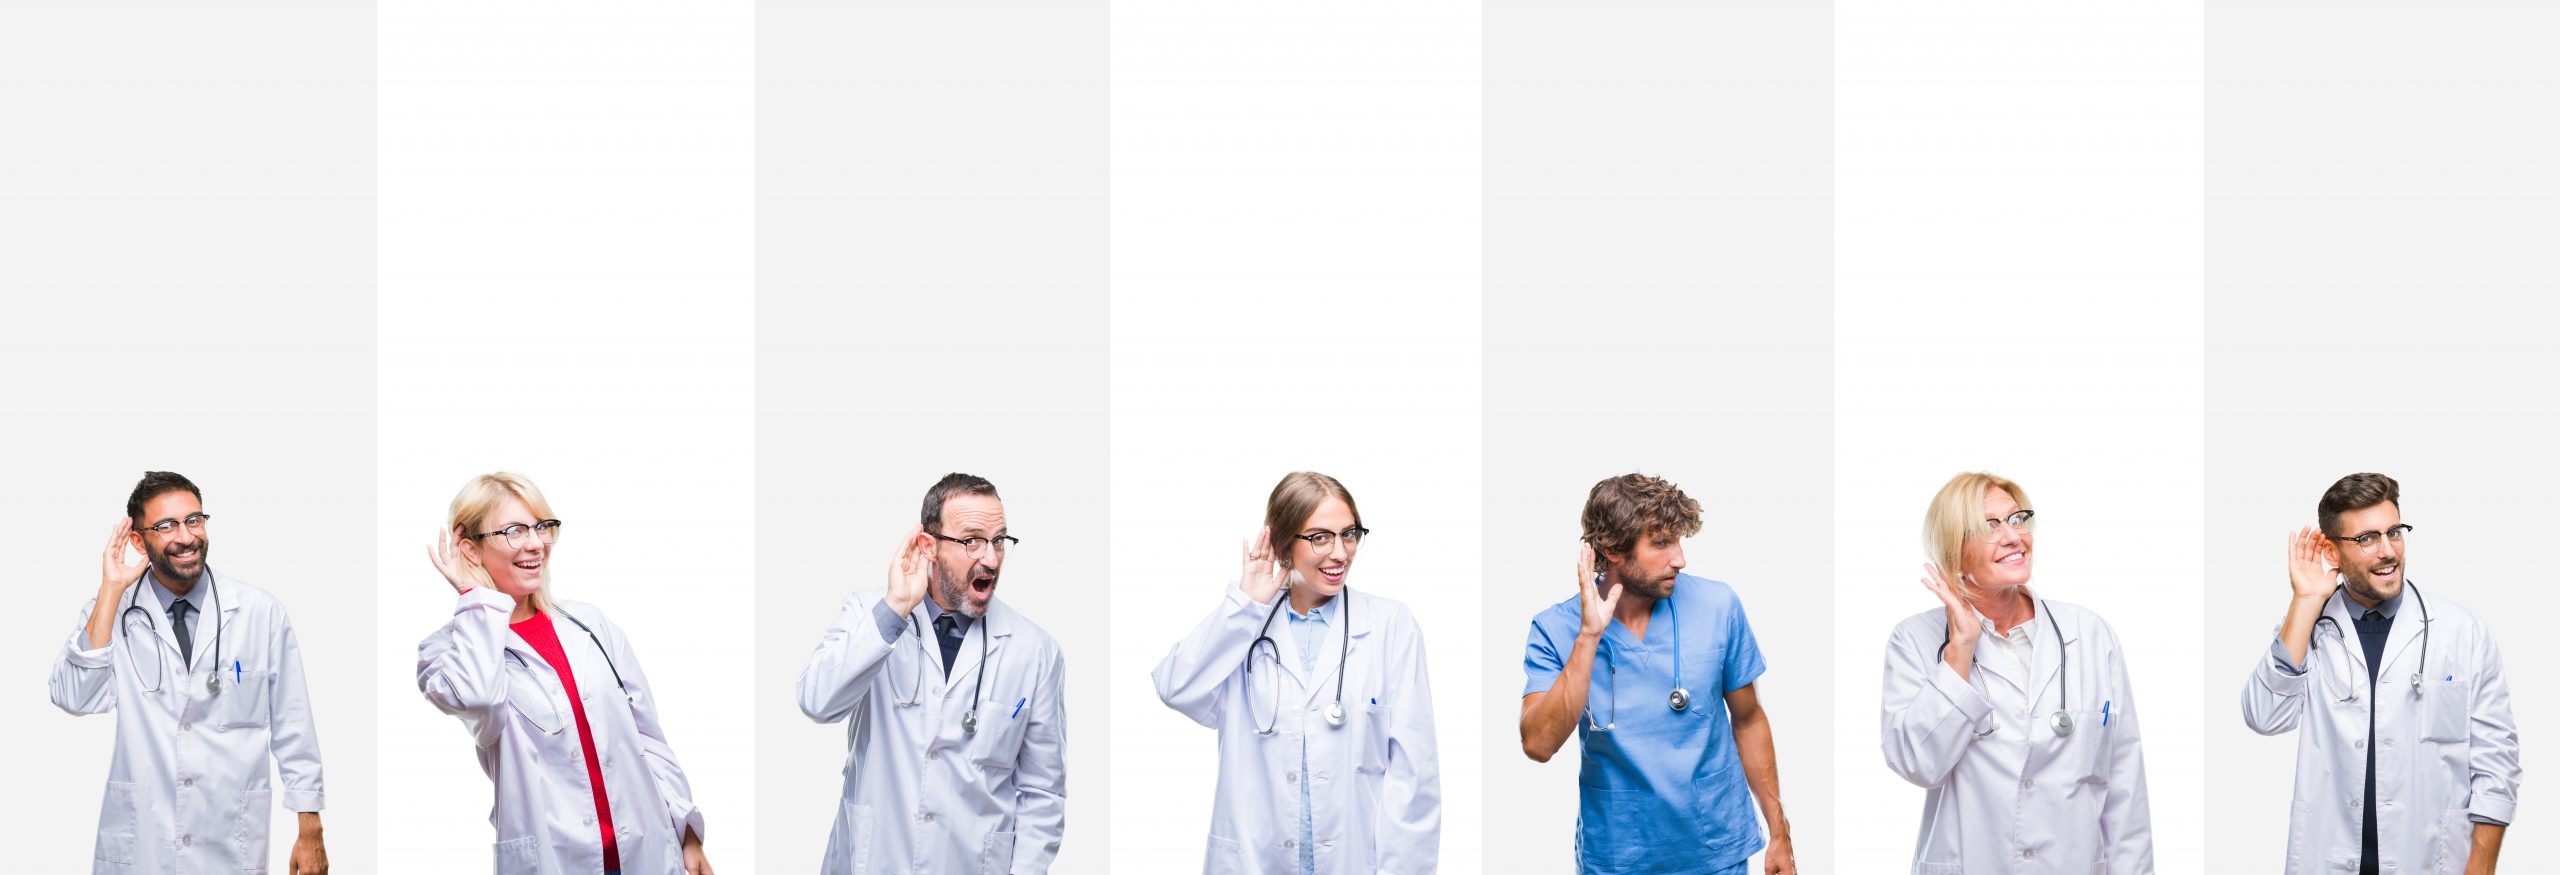 Group of audiologists over stripes isolated background smiling with hand over ear listening.